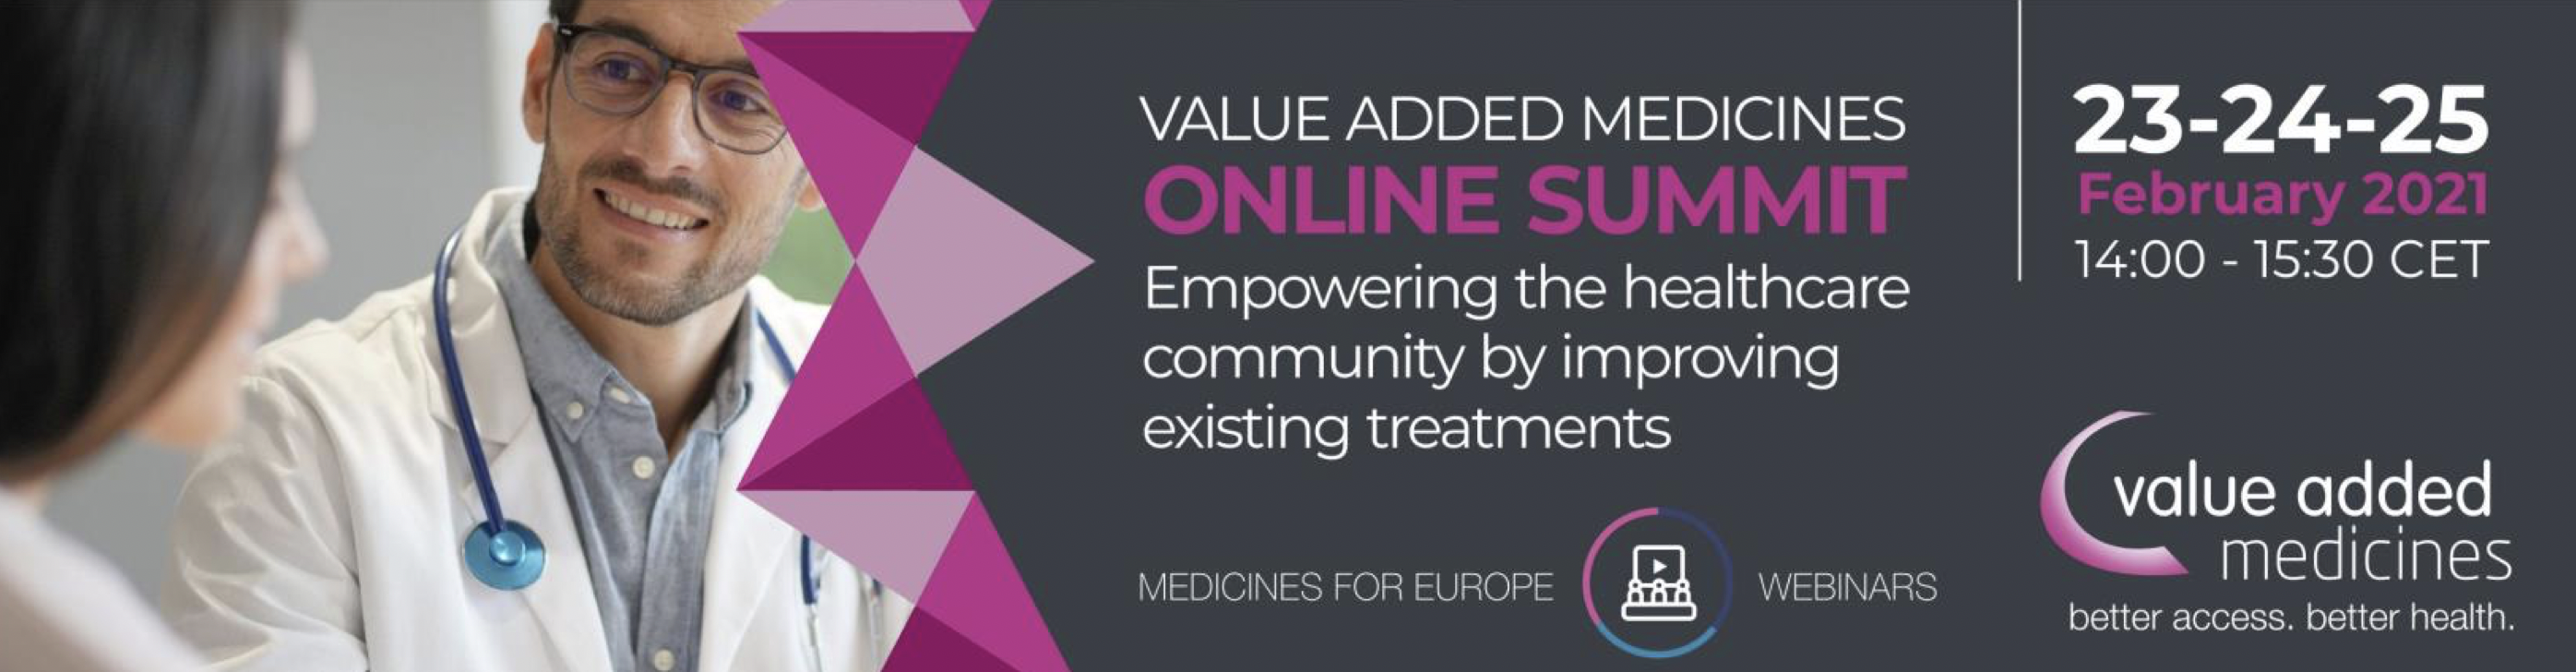 Value added medicines online summit. Empowering the healthcare community by improving existing treatments